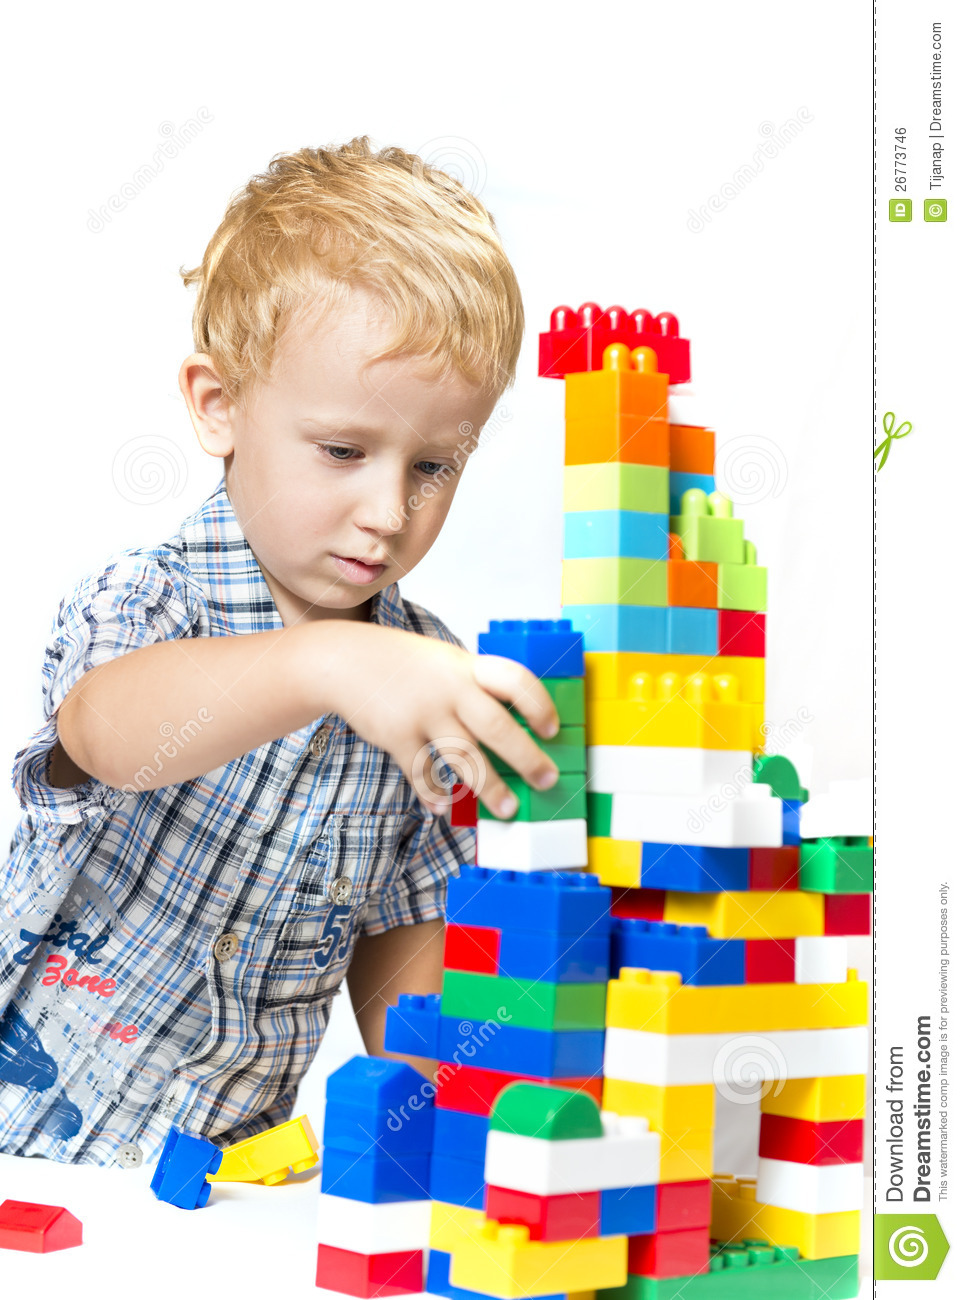 Play With Patterns Prints And Lots Of Accessories For: Child Playing With Toys Royalty Free Stock Image